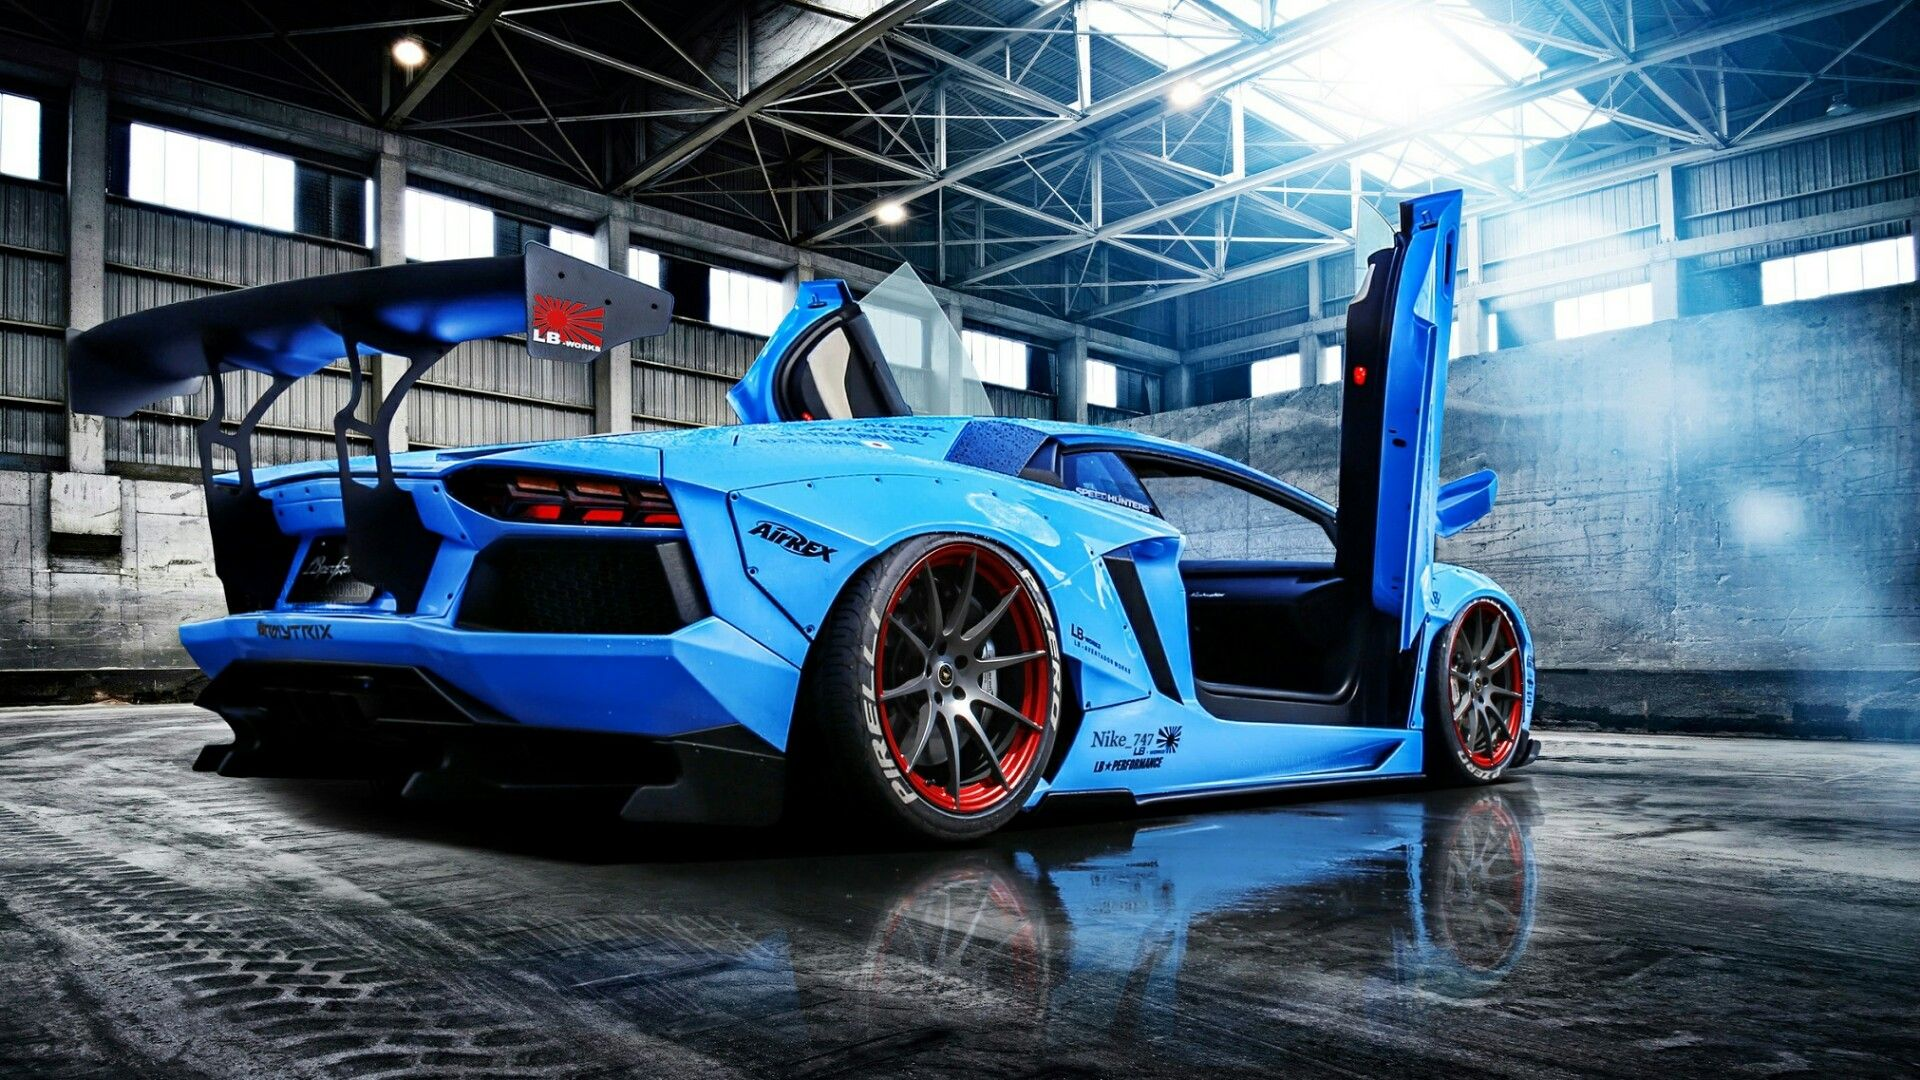 Blue Lamborghini Aventador Wallpapers - Top Free Blue ...